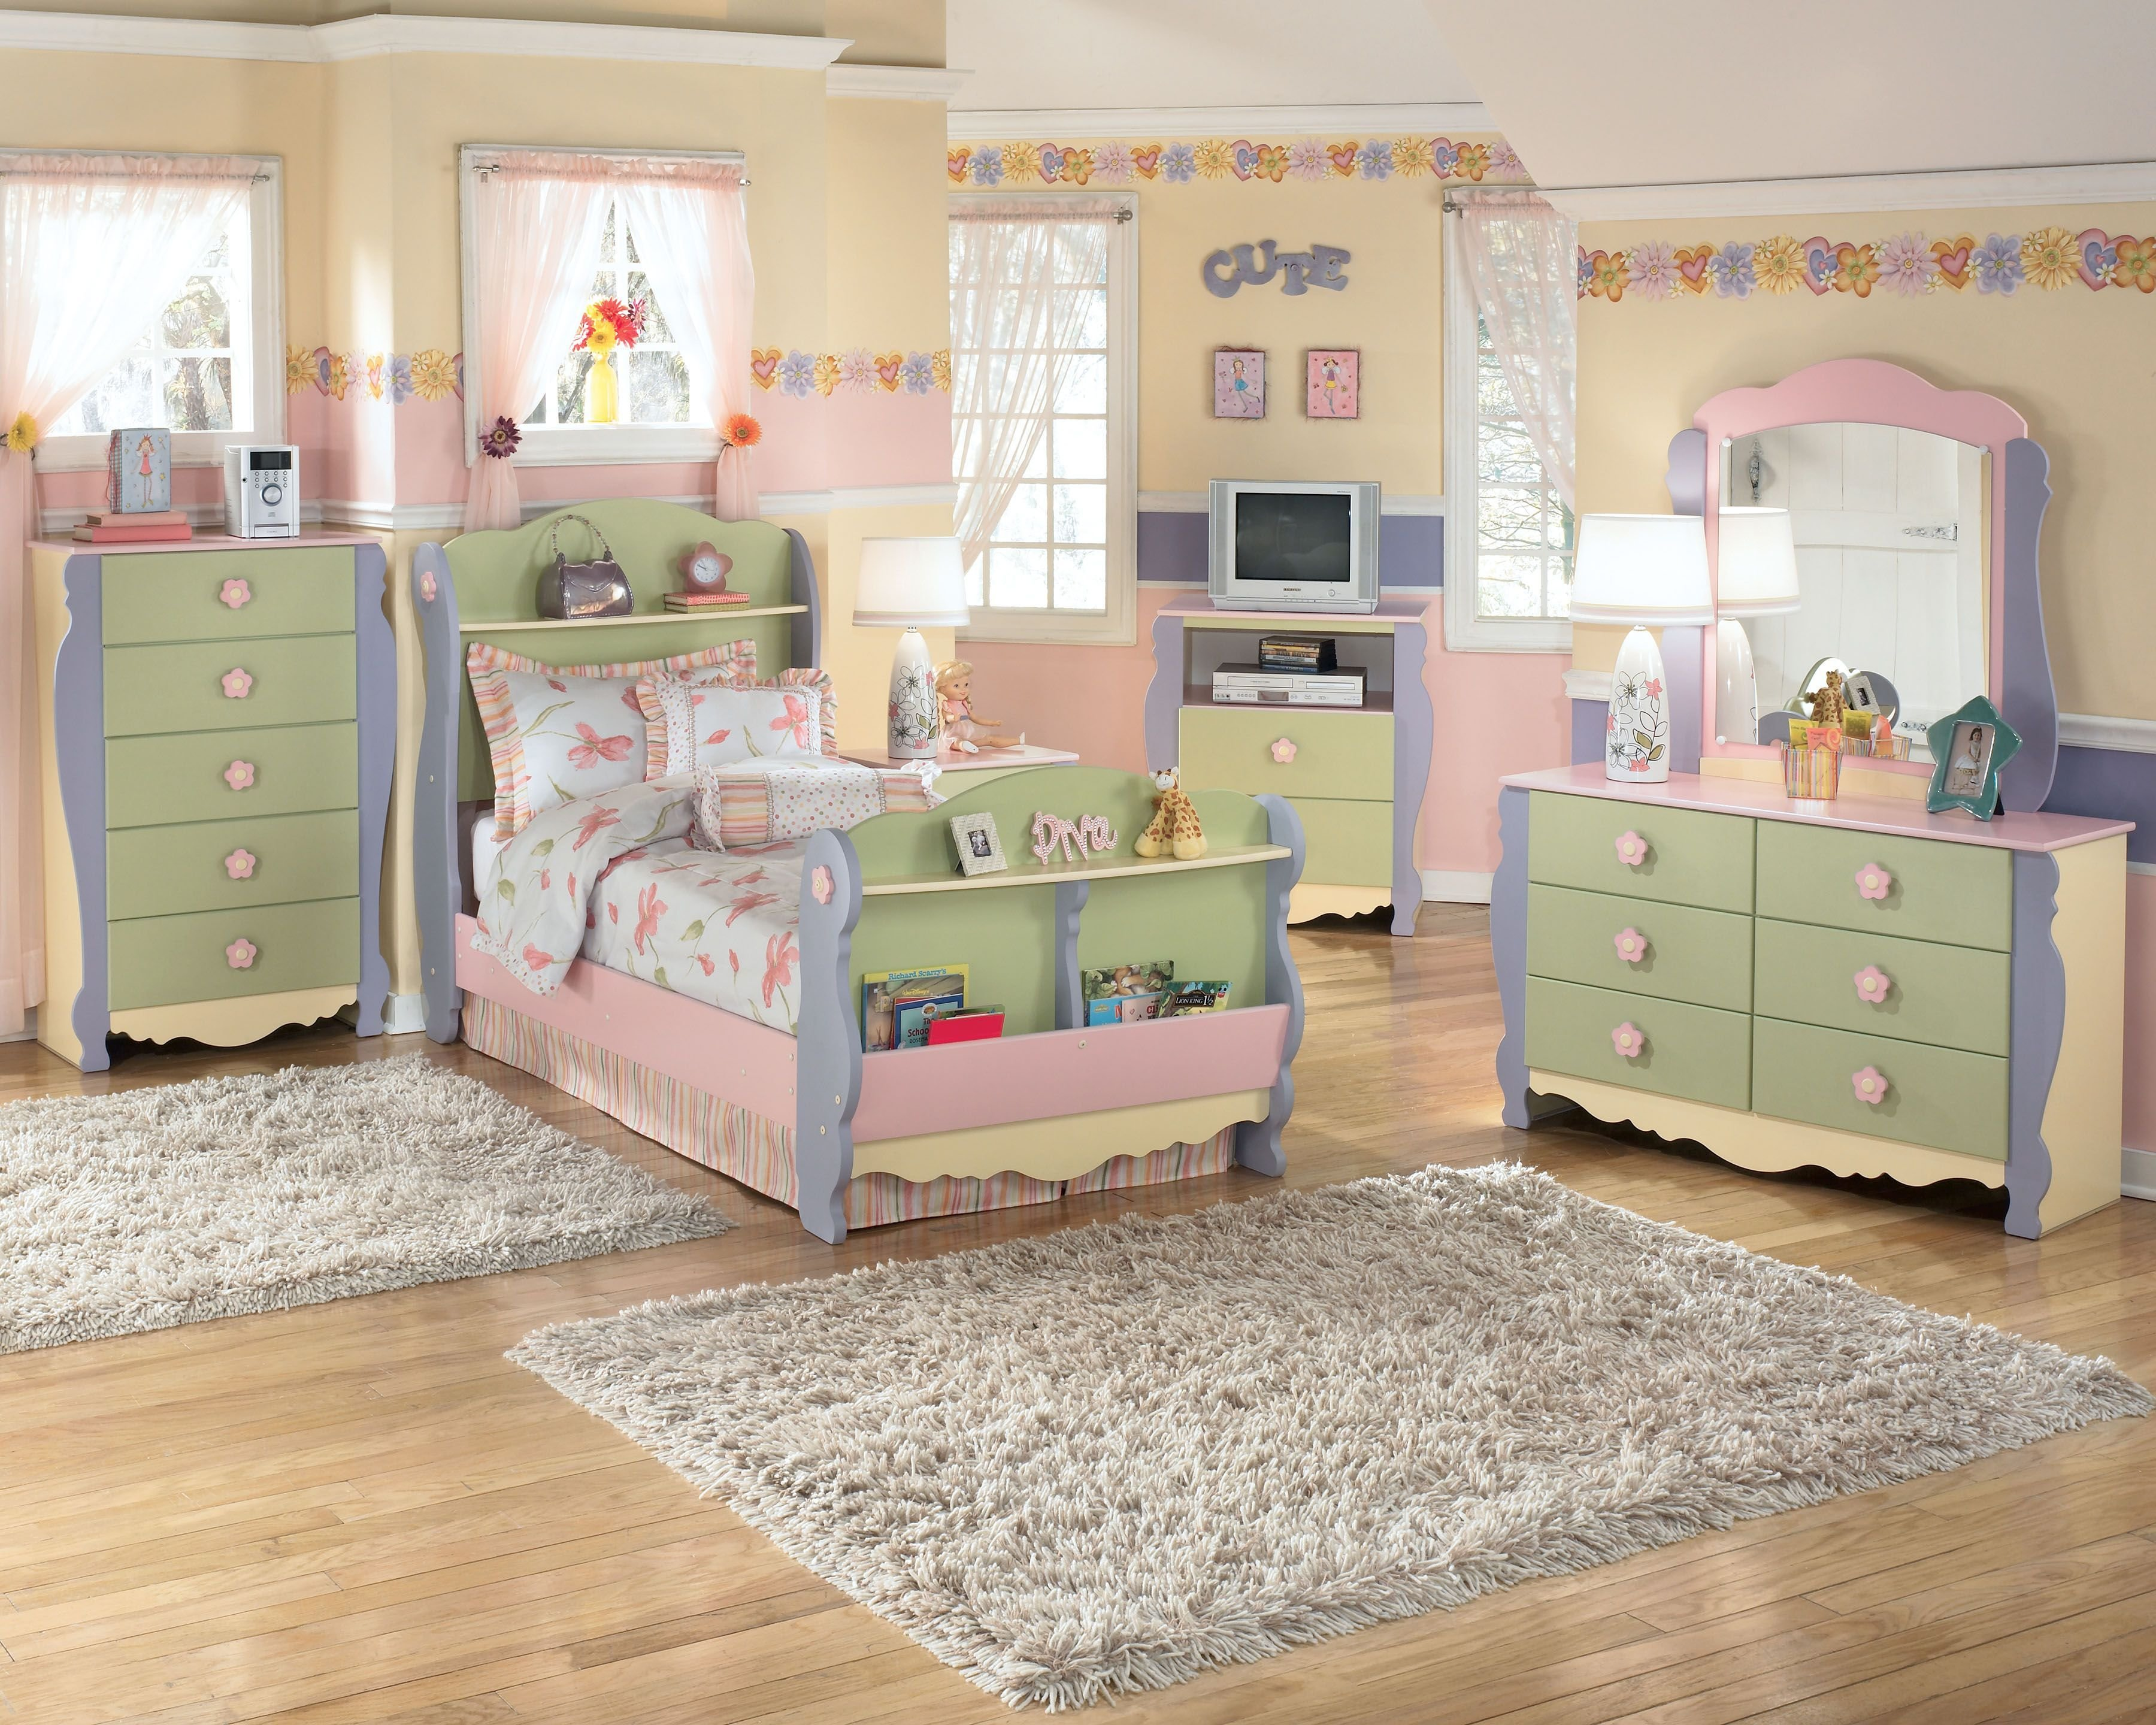 Best Such A Sweet Ashley Furniture Homestore Bedroom For A With Pictures